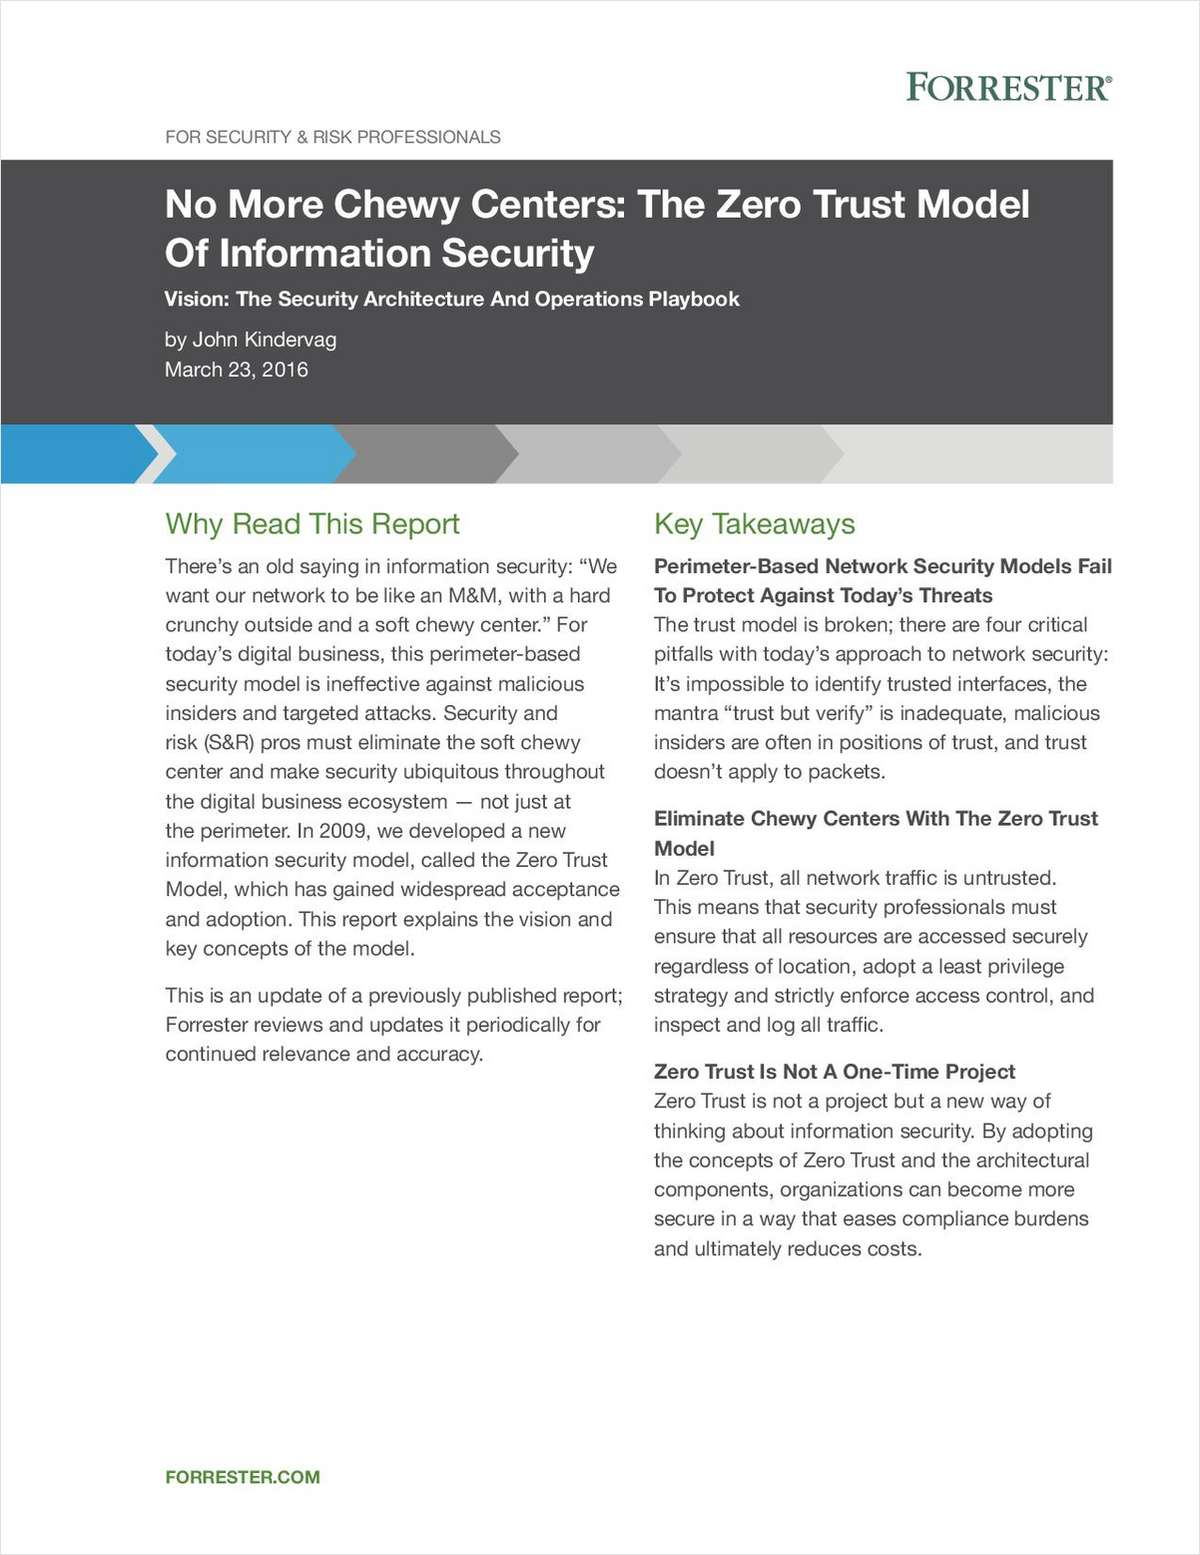 No More Chewy Centers: The Zero Trust Model Of Information Security